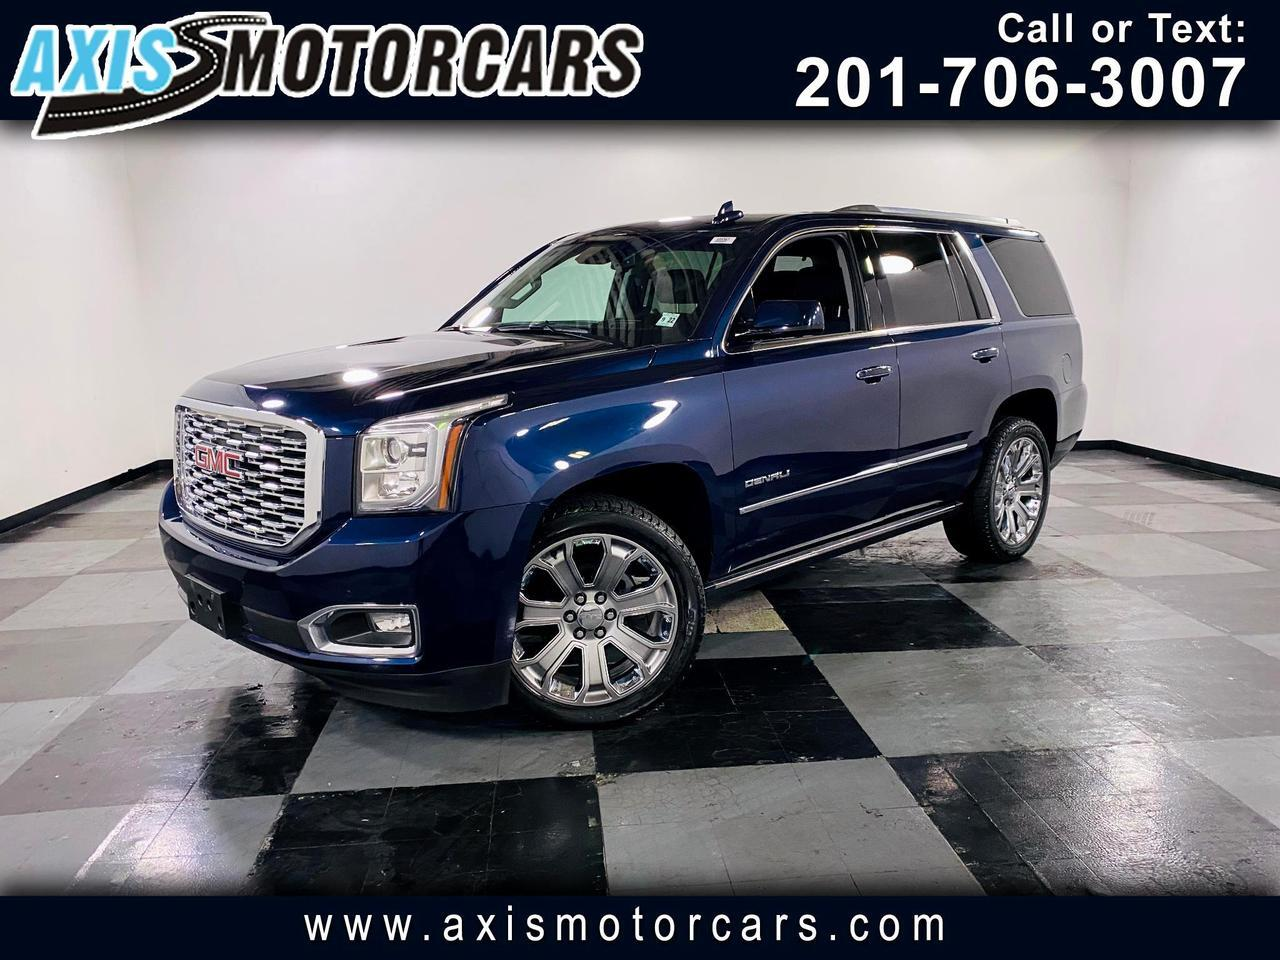 2018 GMC Yukon w/Navigation Backup Camera Sunroof System Bose